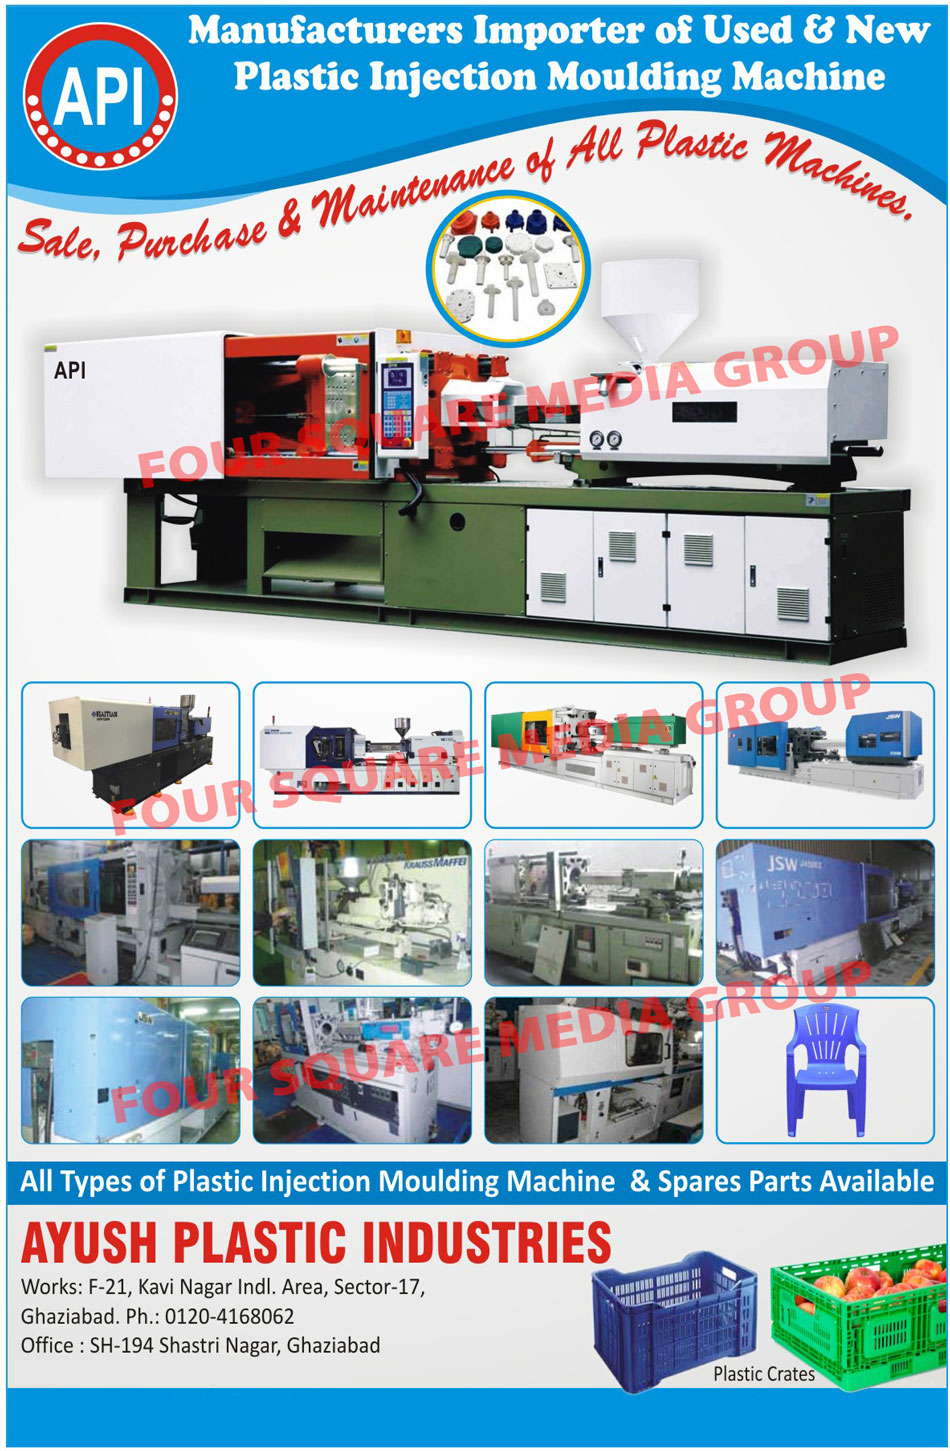 Used Plastic Injection Moulding Machines, Plastic Injection Moulding Machines, Plastic Injection Molding Machines, Plastic Moulded Components, Blow Moulded Plastic Components, Battery Containers, Battery Plates, Automatic Plastic Moulding Machines, Battery Container Accessories, Industrial Moulding Machines, Used Plastic Injection Molding Machines